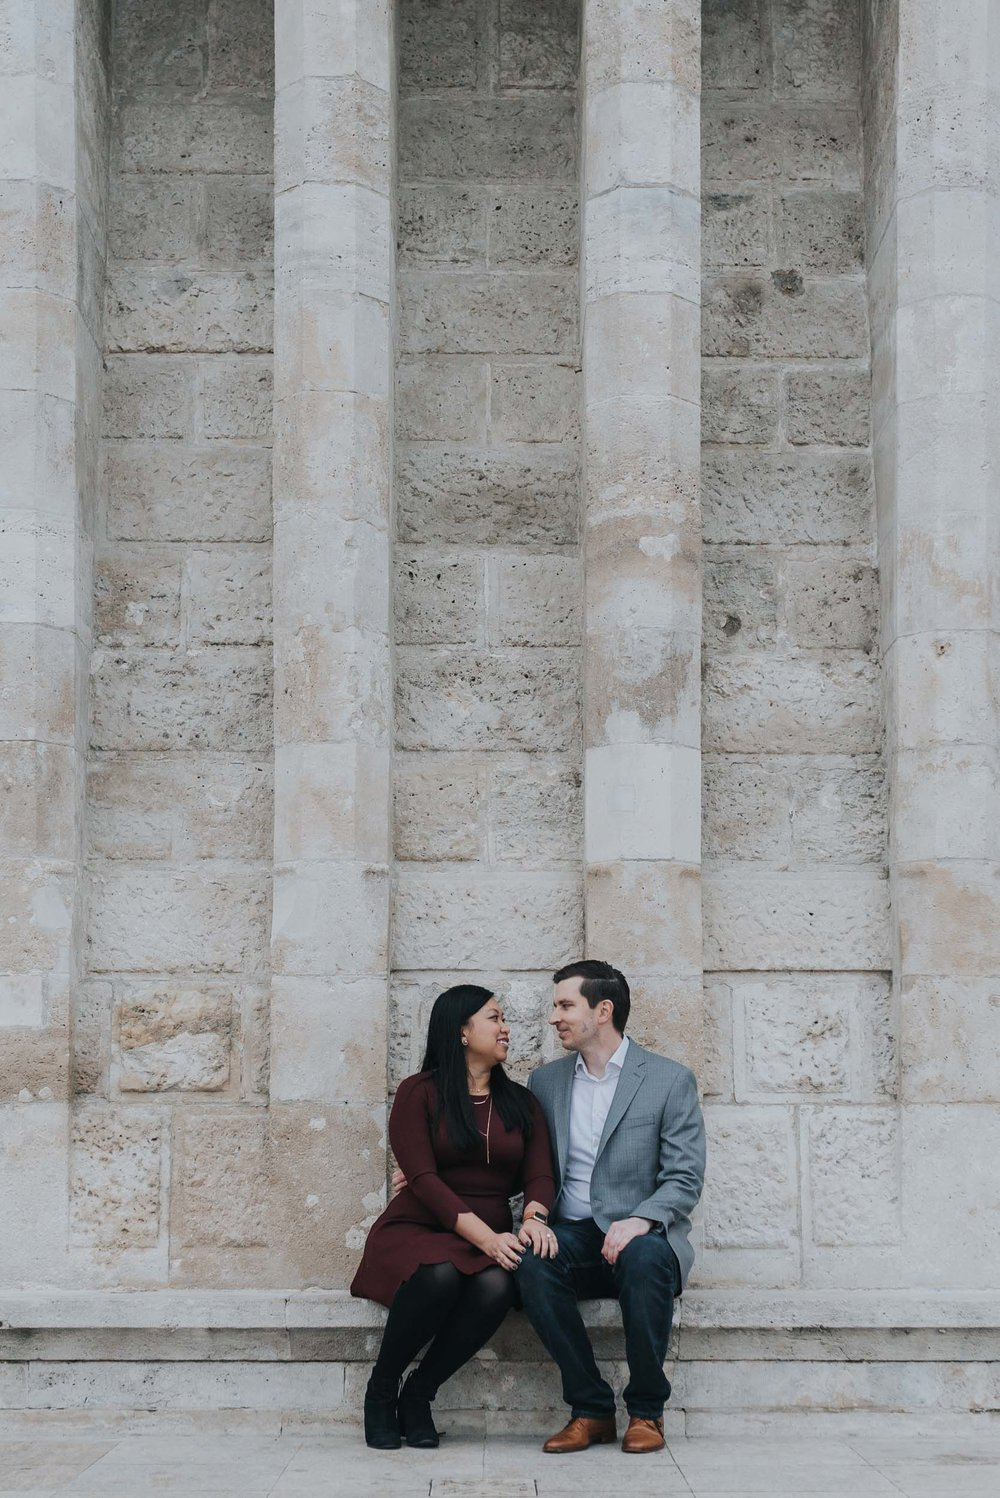 Budapest photographer - engagement photography at Fisherman's Bastion